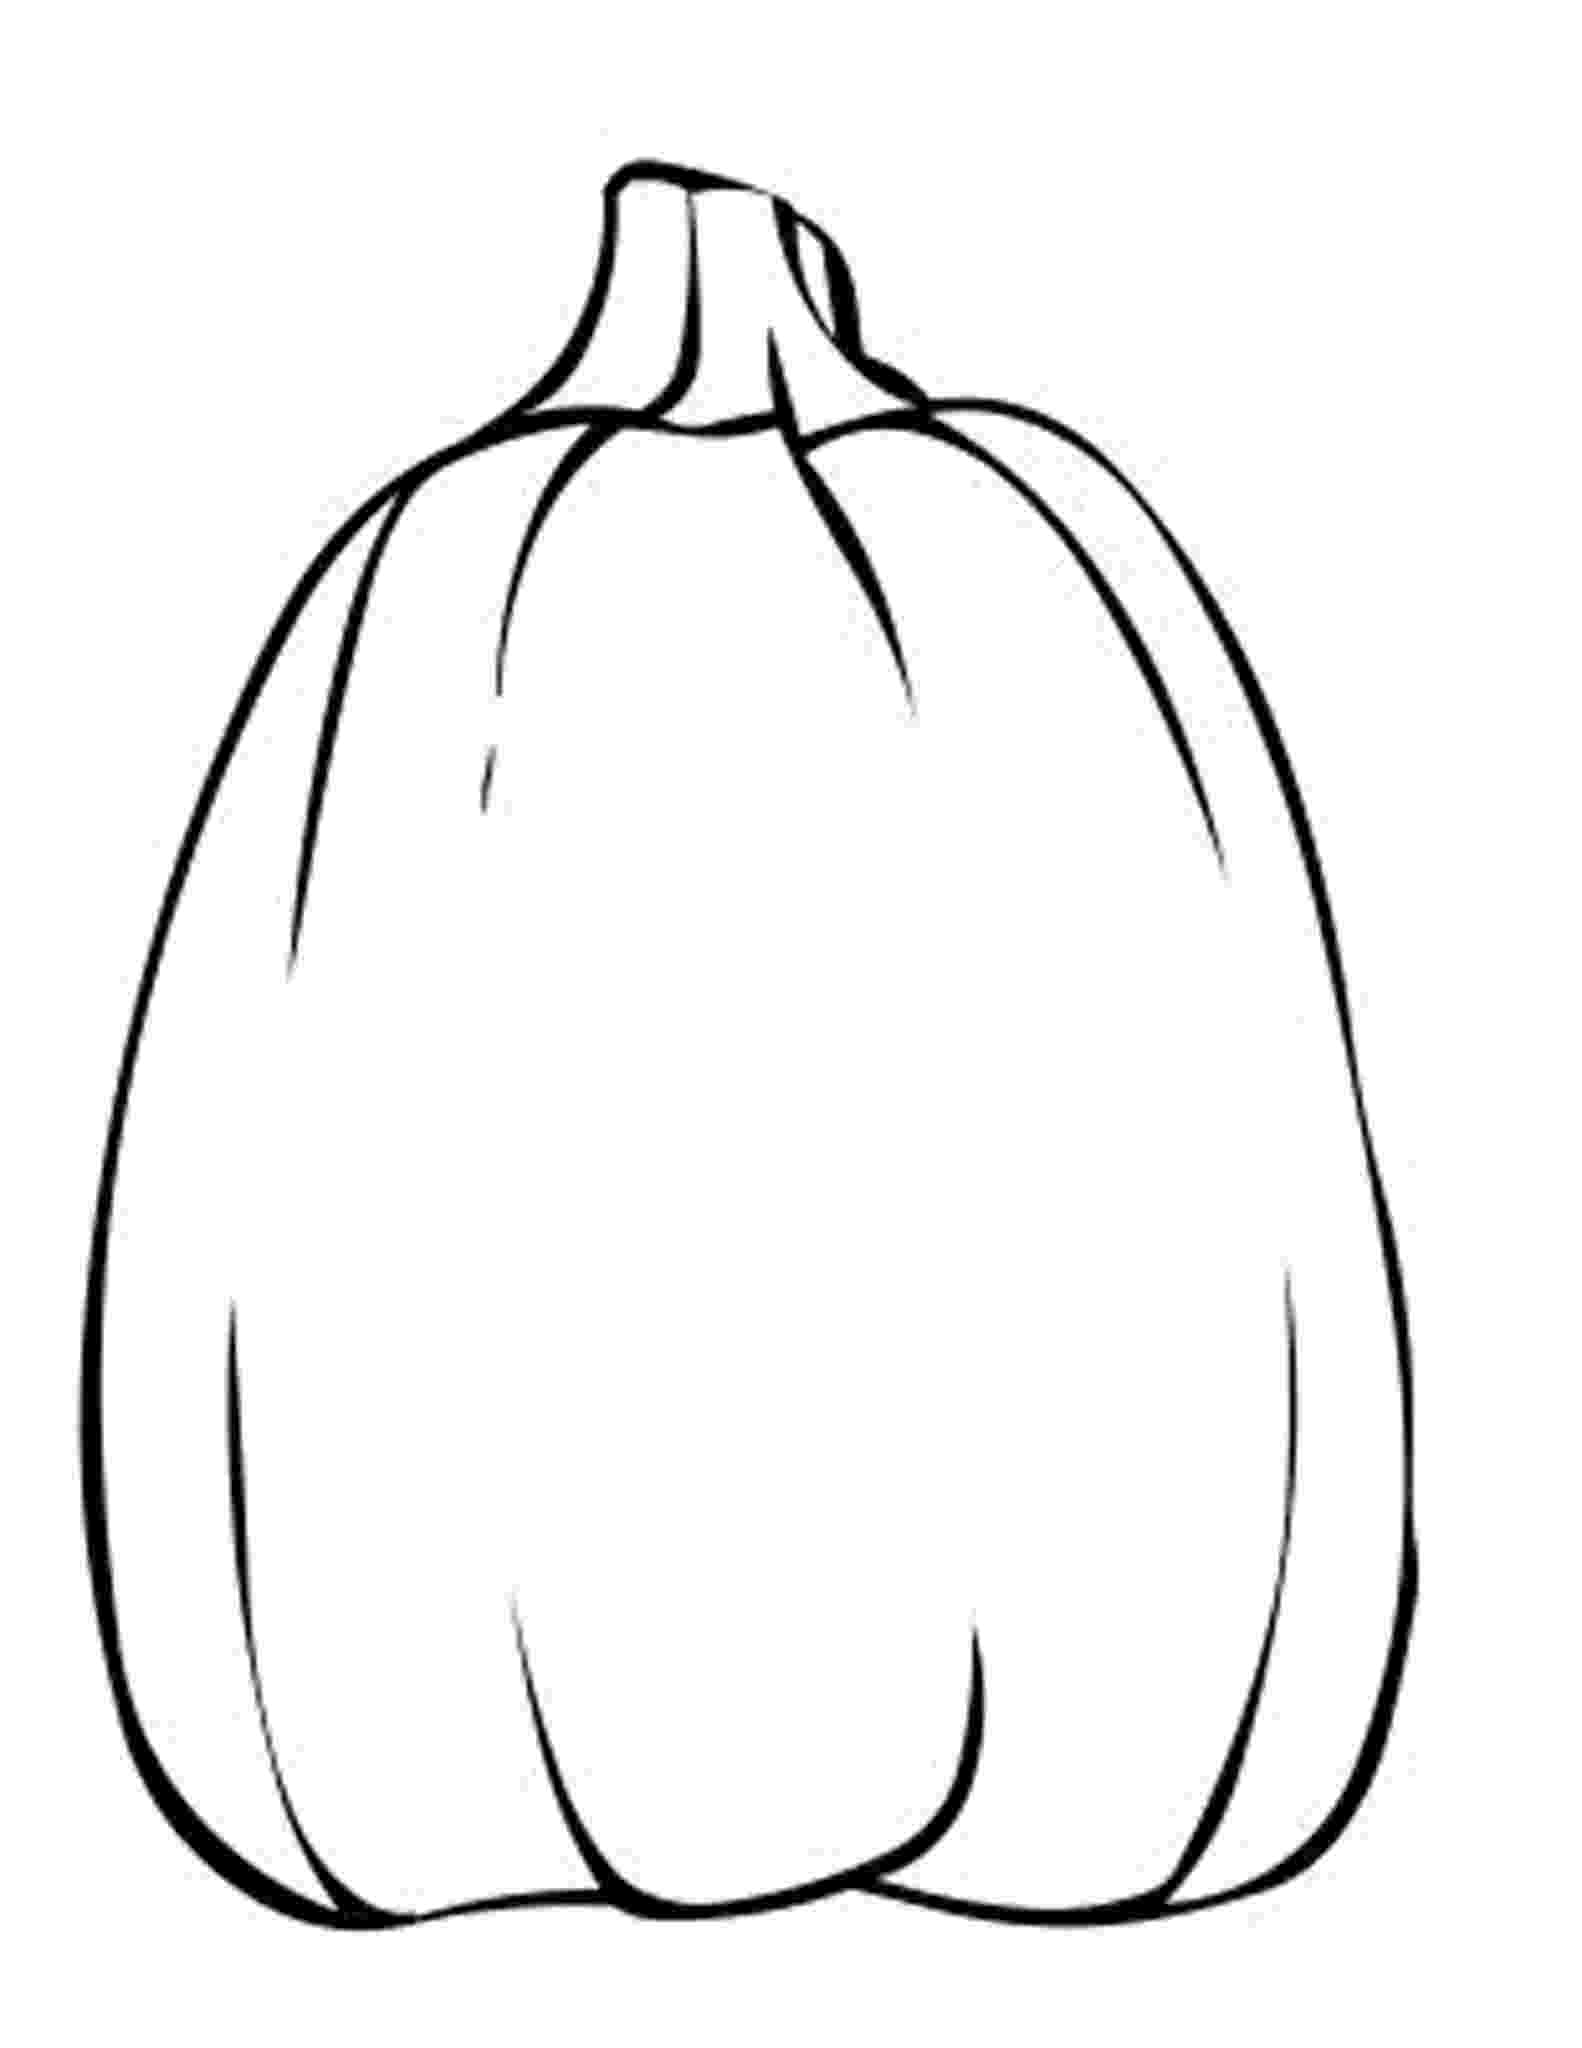 pumkin coloring pages print download pumpkin coloring pages and benefits of pages coloring pumkin